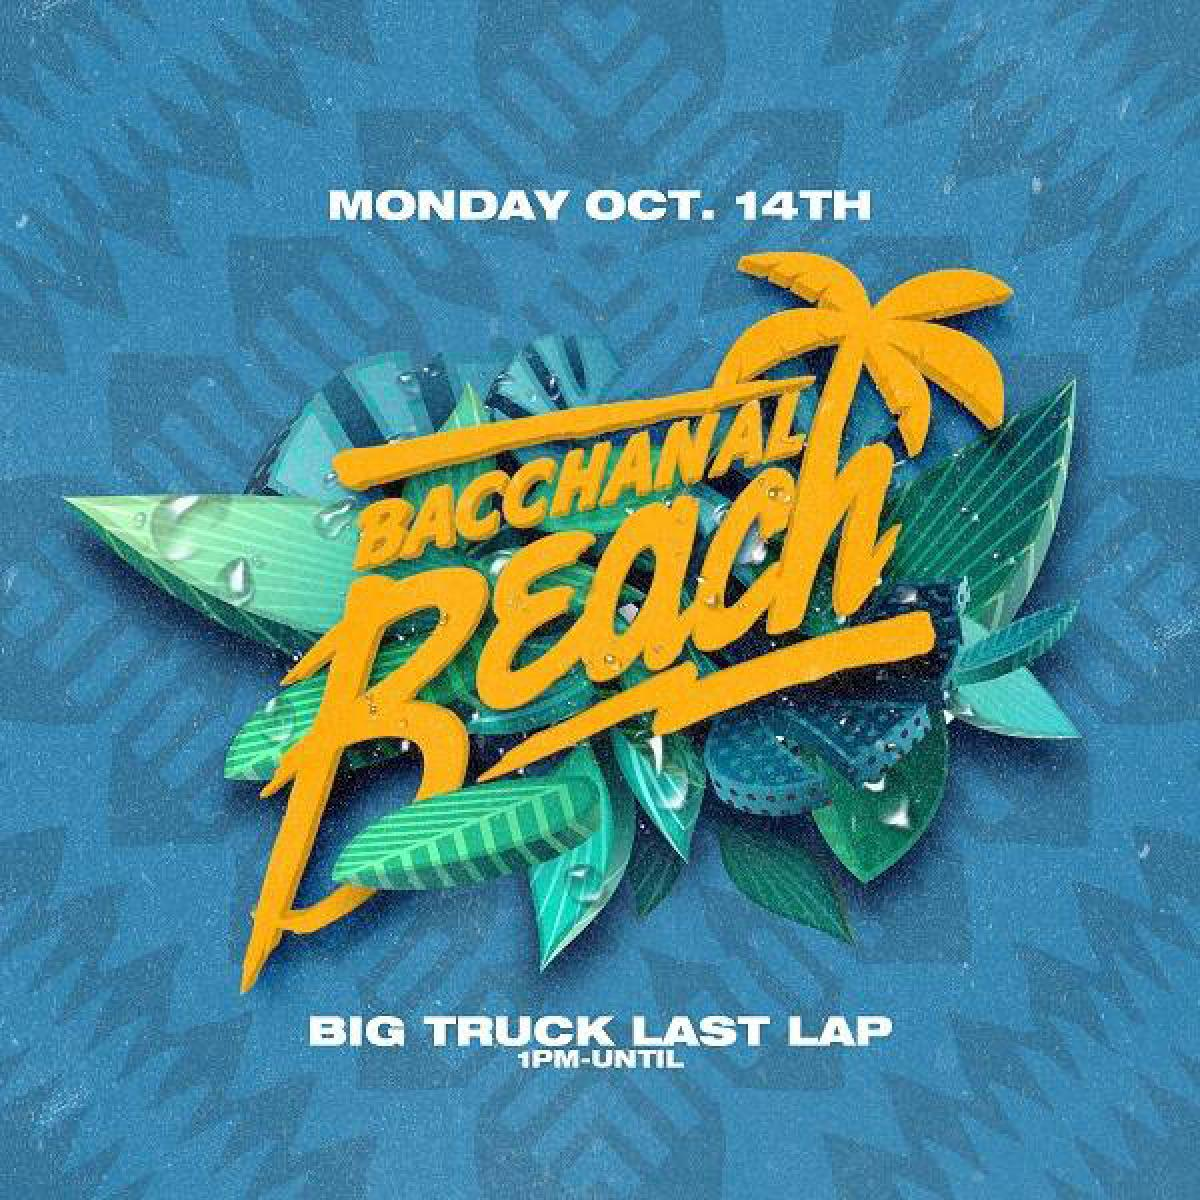 Bacchanal Beach flyer or graphic.